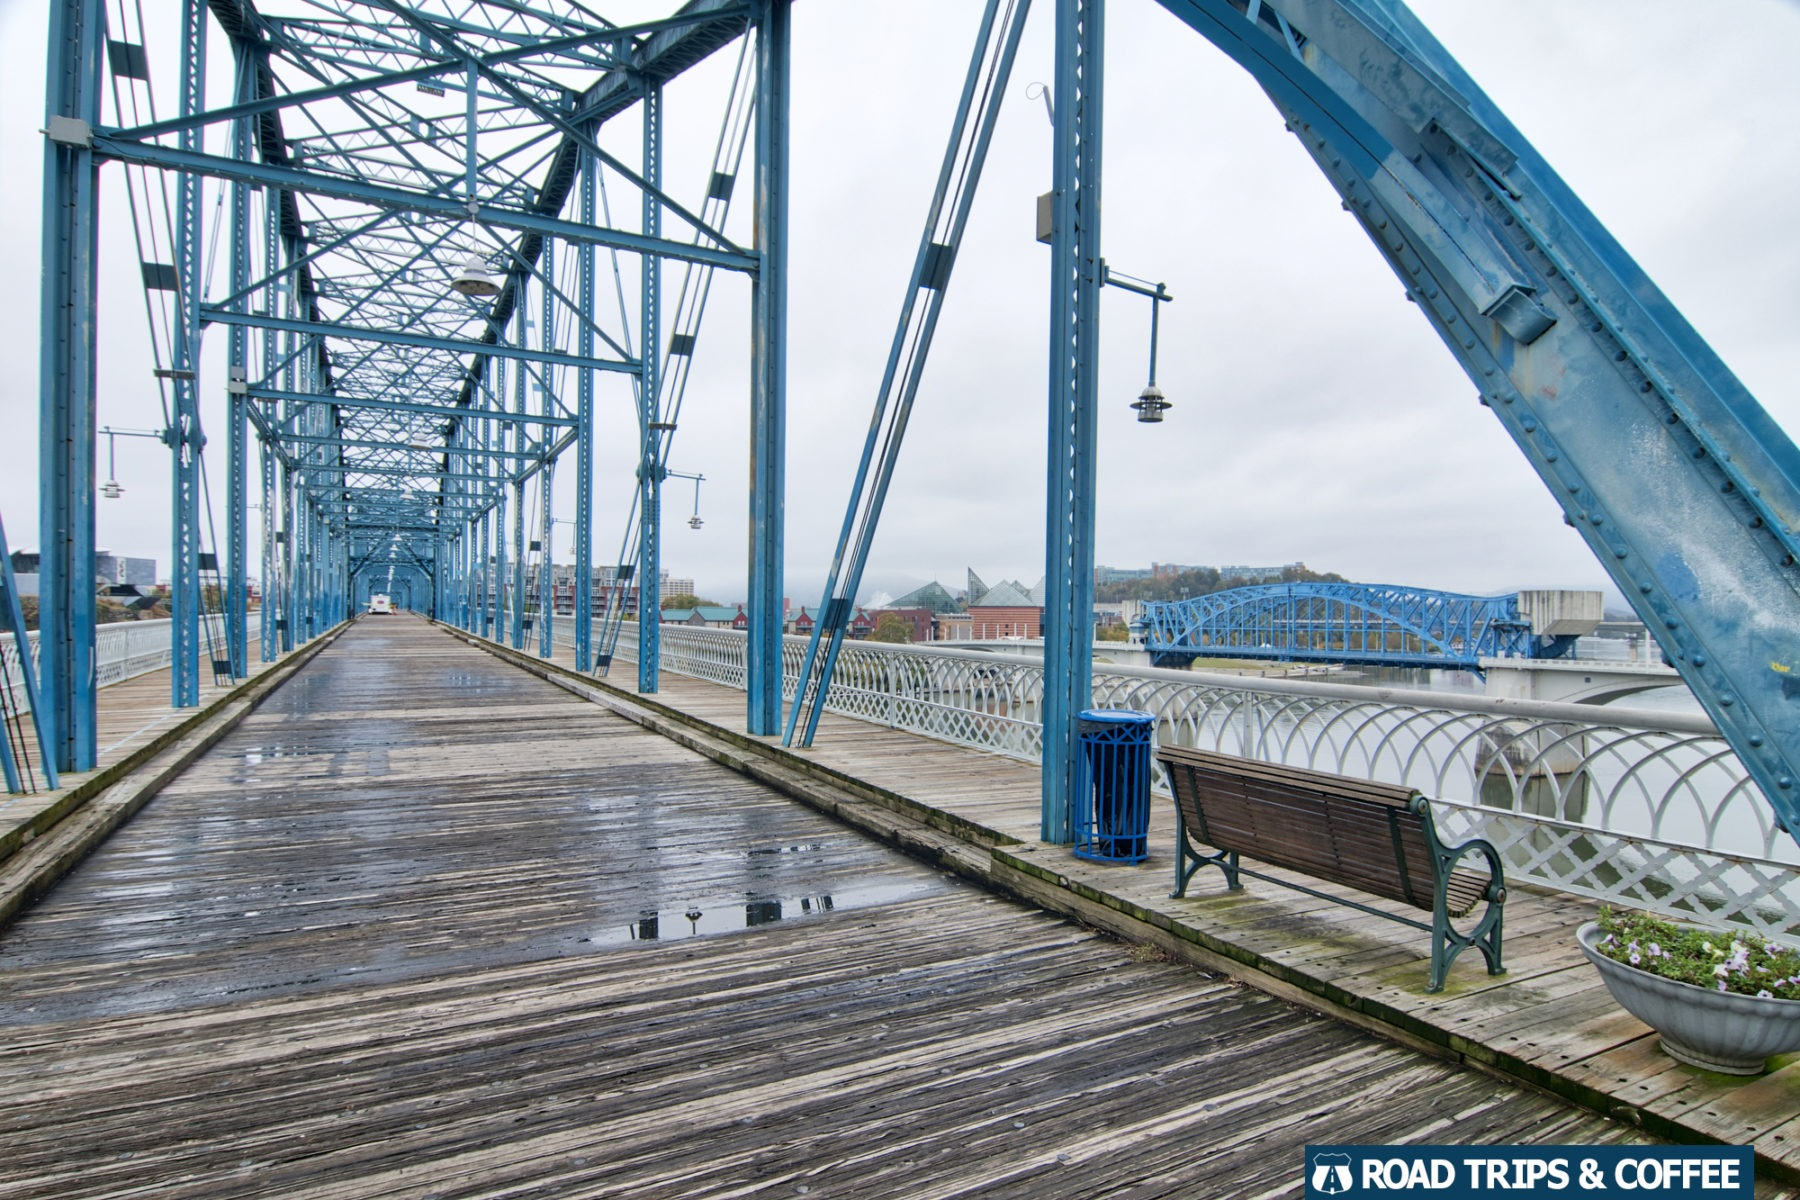 The blue steel frame of the Walnut Street Bridge in Chattanooga, Tennessee